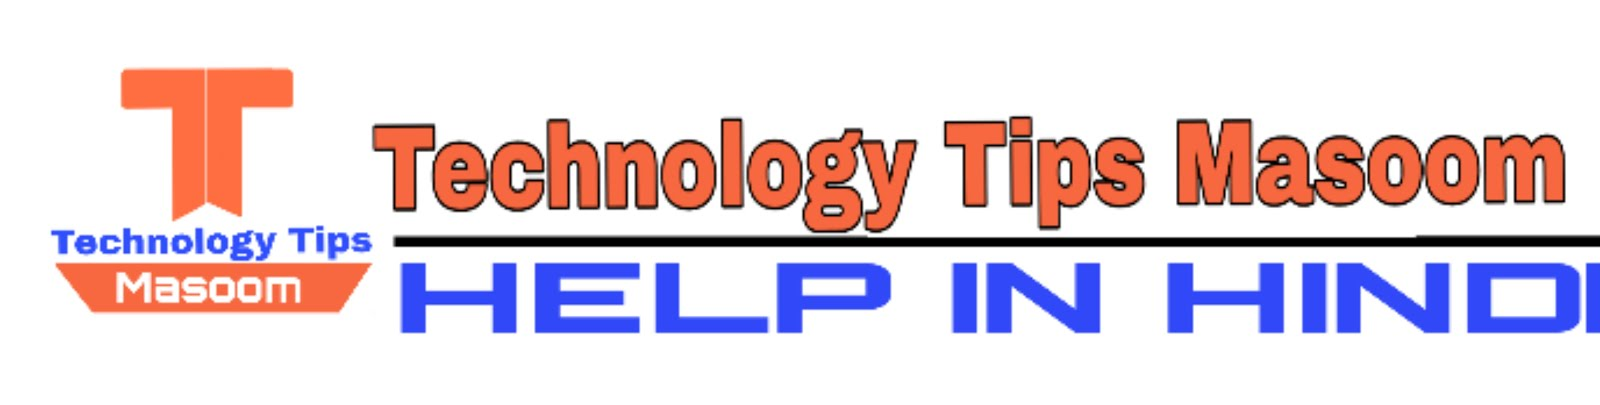 TECHNOLOGY TIPS MASOOM - Help in Hindi